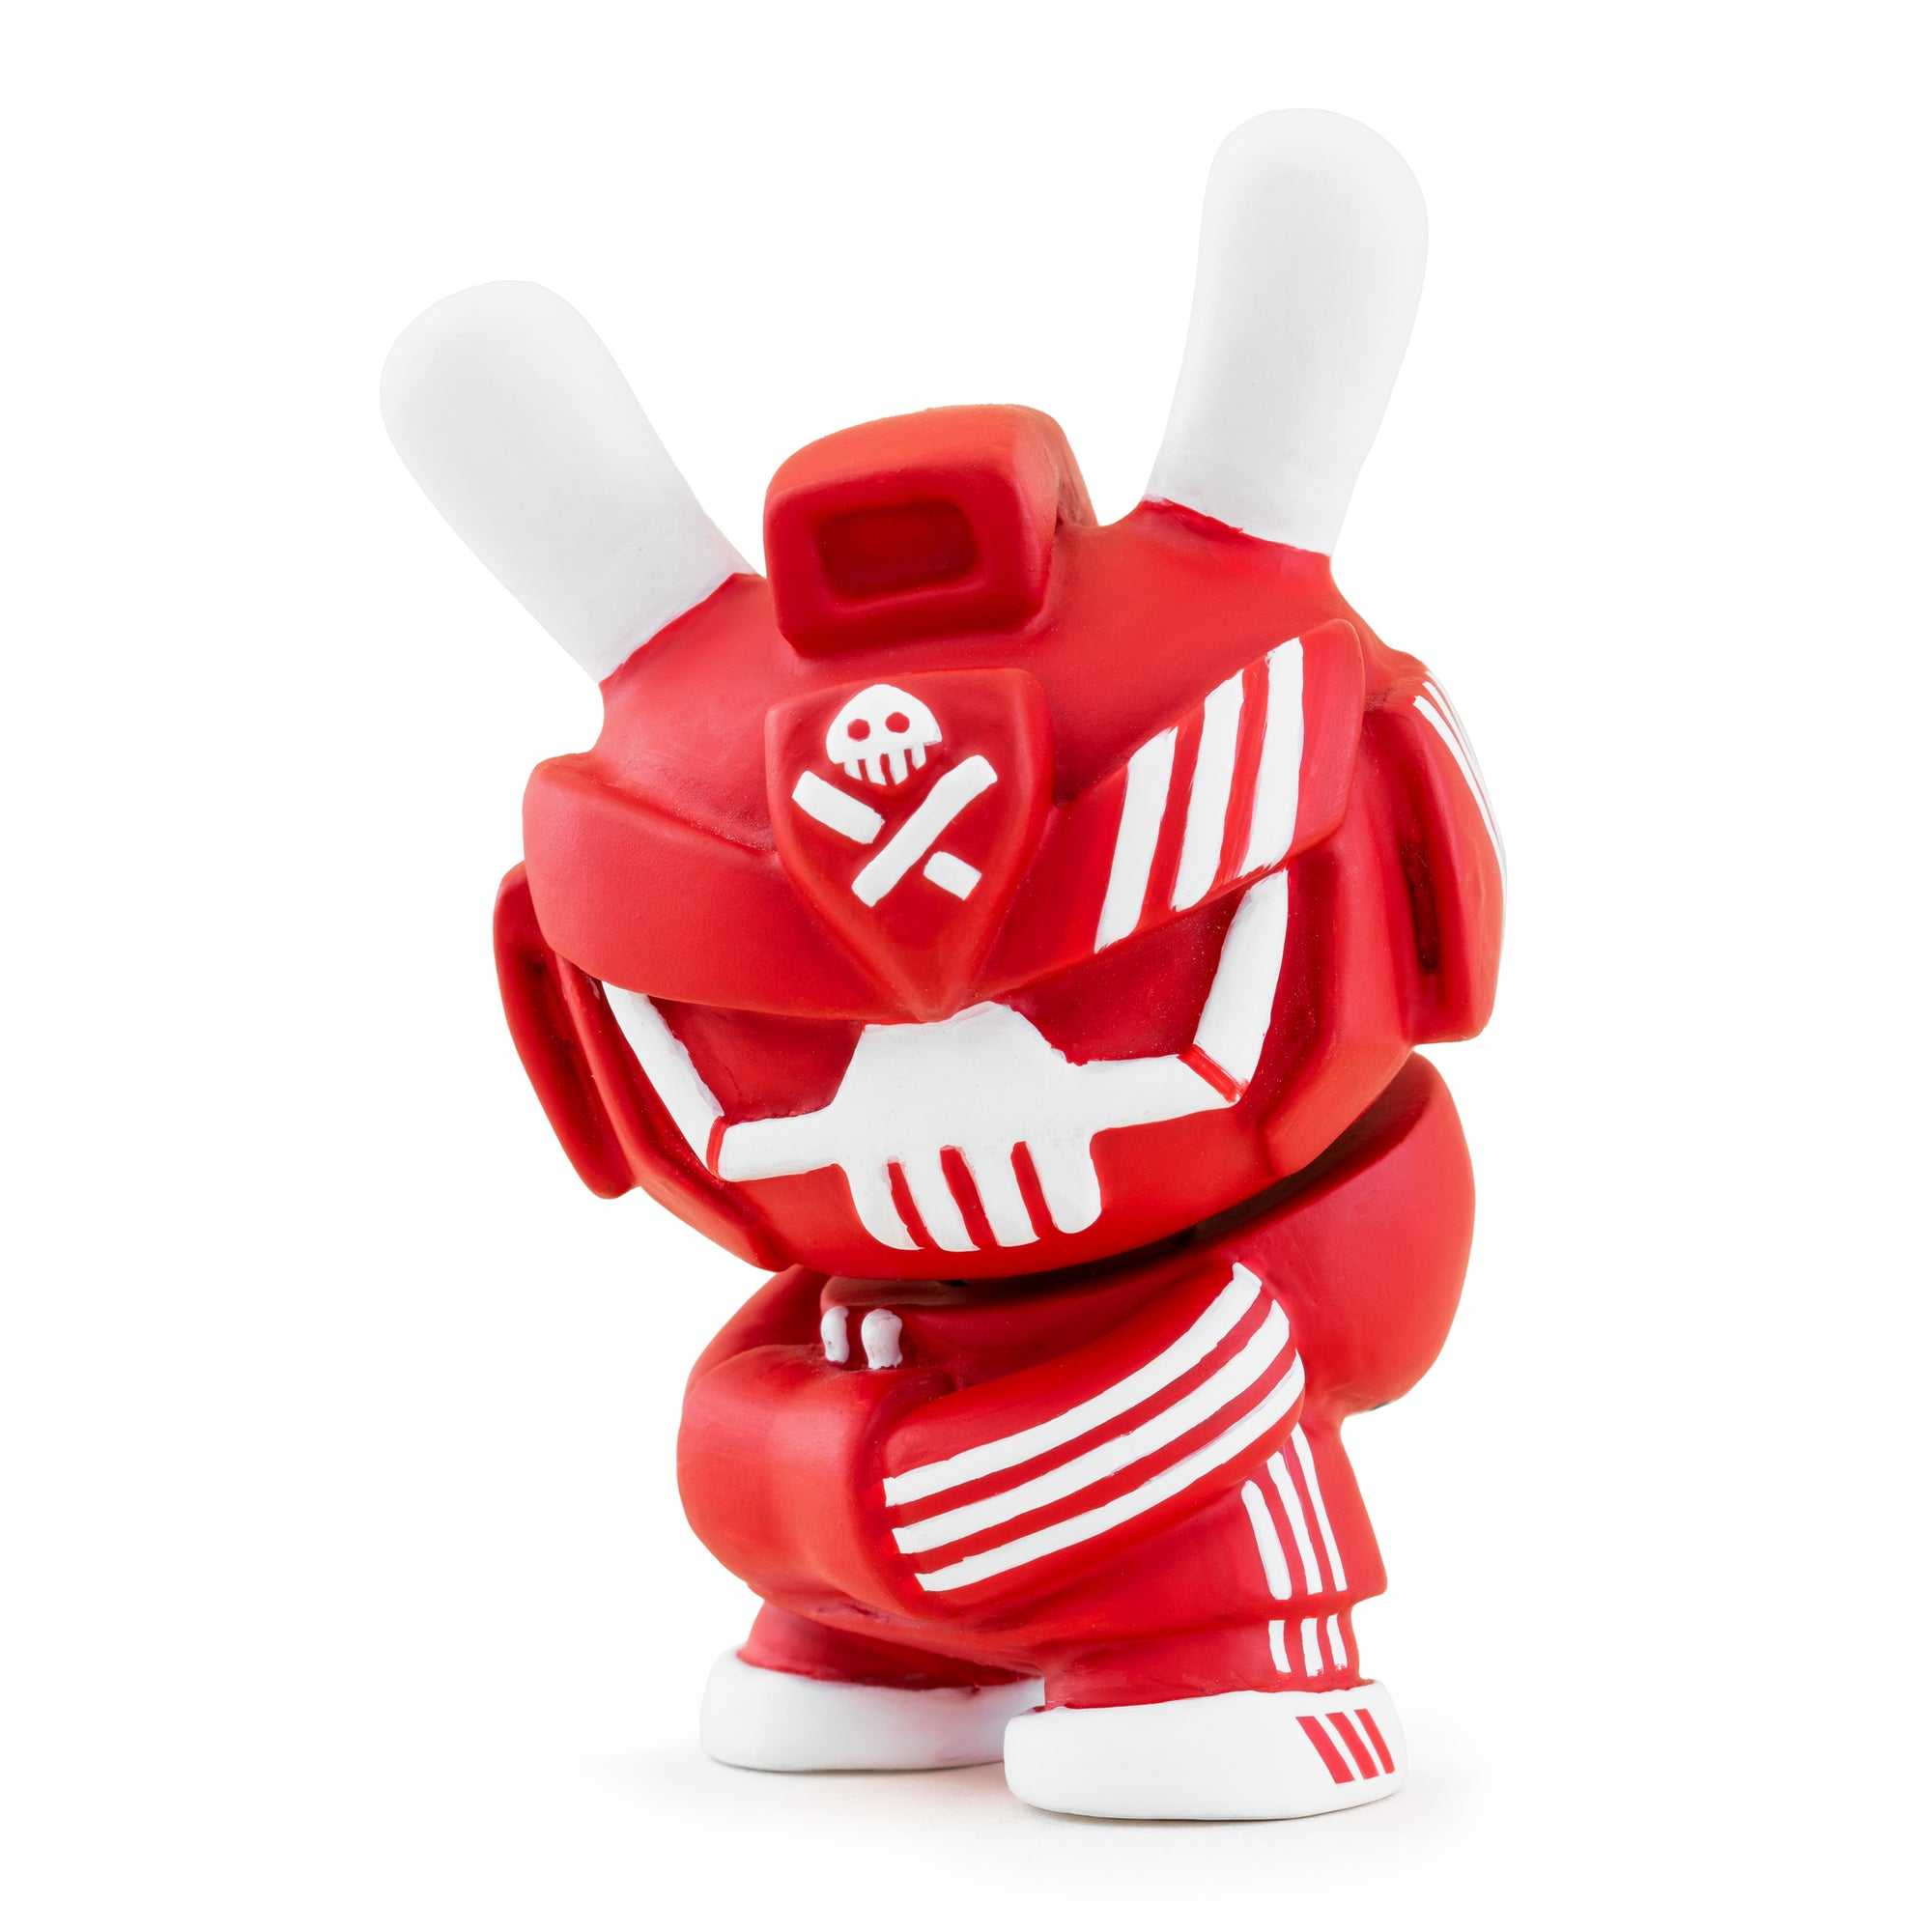 Red Nakai OG Resin BabyTEQ Dunny + K9 by Quiccs (Signed + Numbered) - Kidrobot